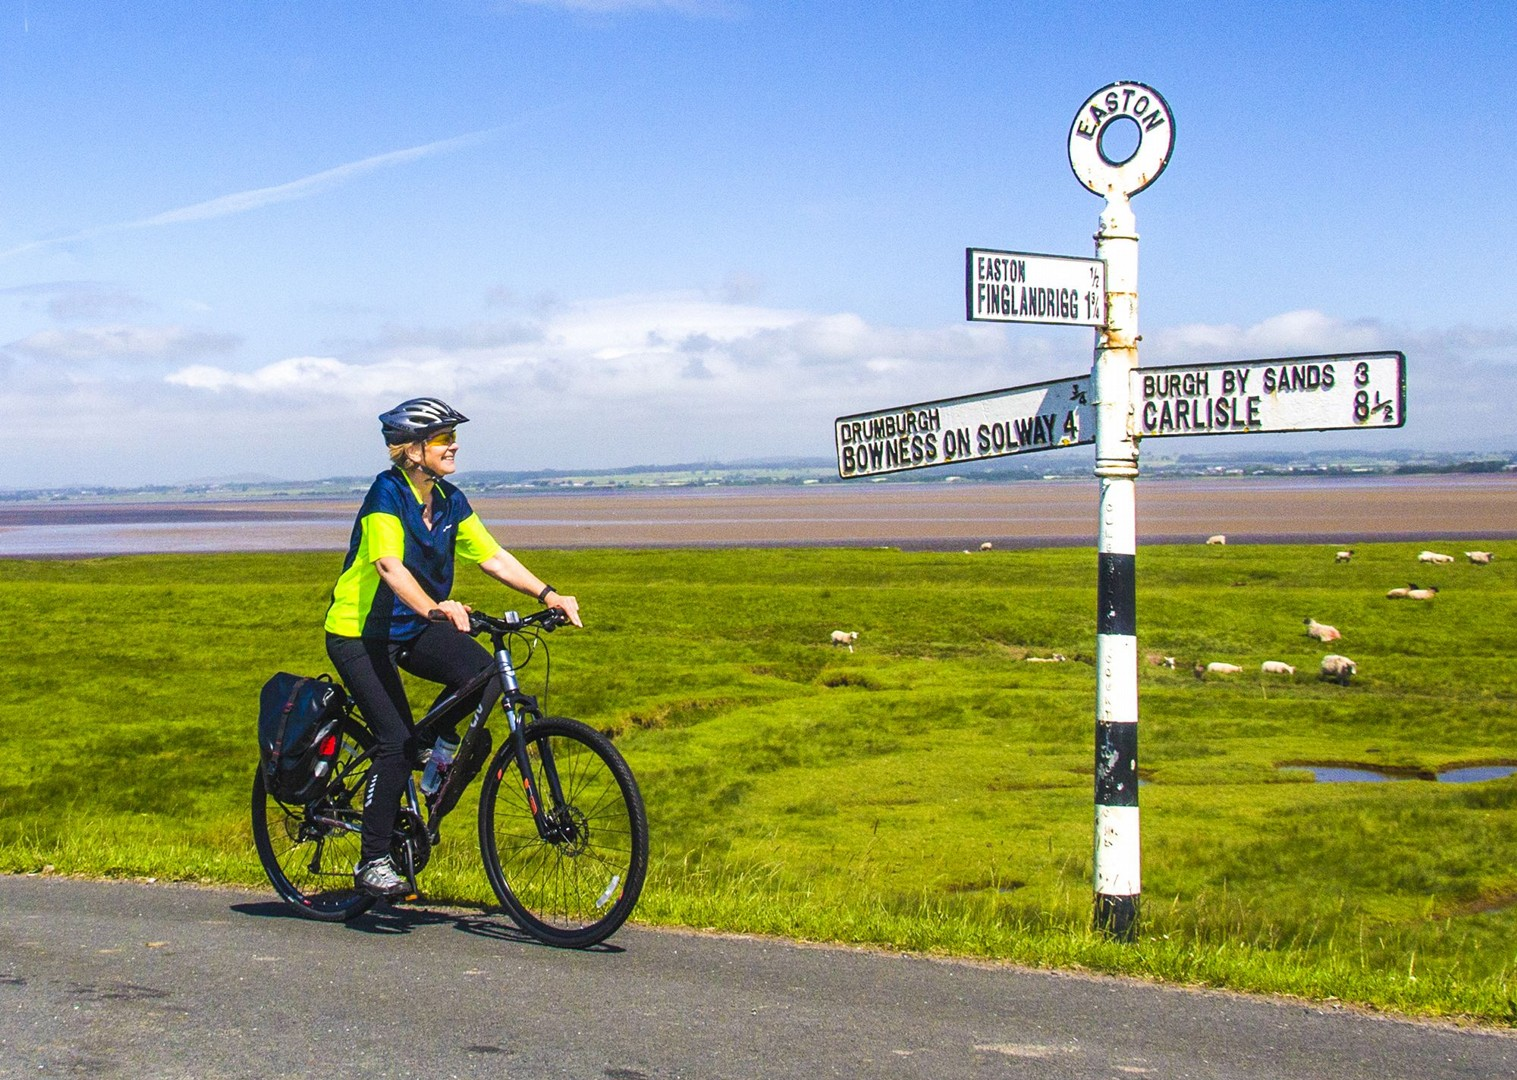 1706_0149-2.jpg - UK - Hadrian's Cycleway - Supported Leisure Cycling Holiday - Leisure Cycling